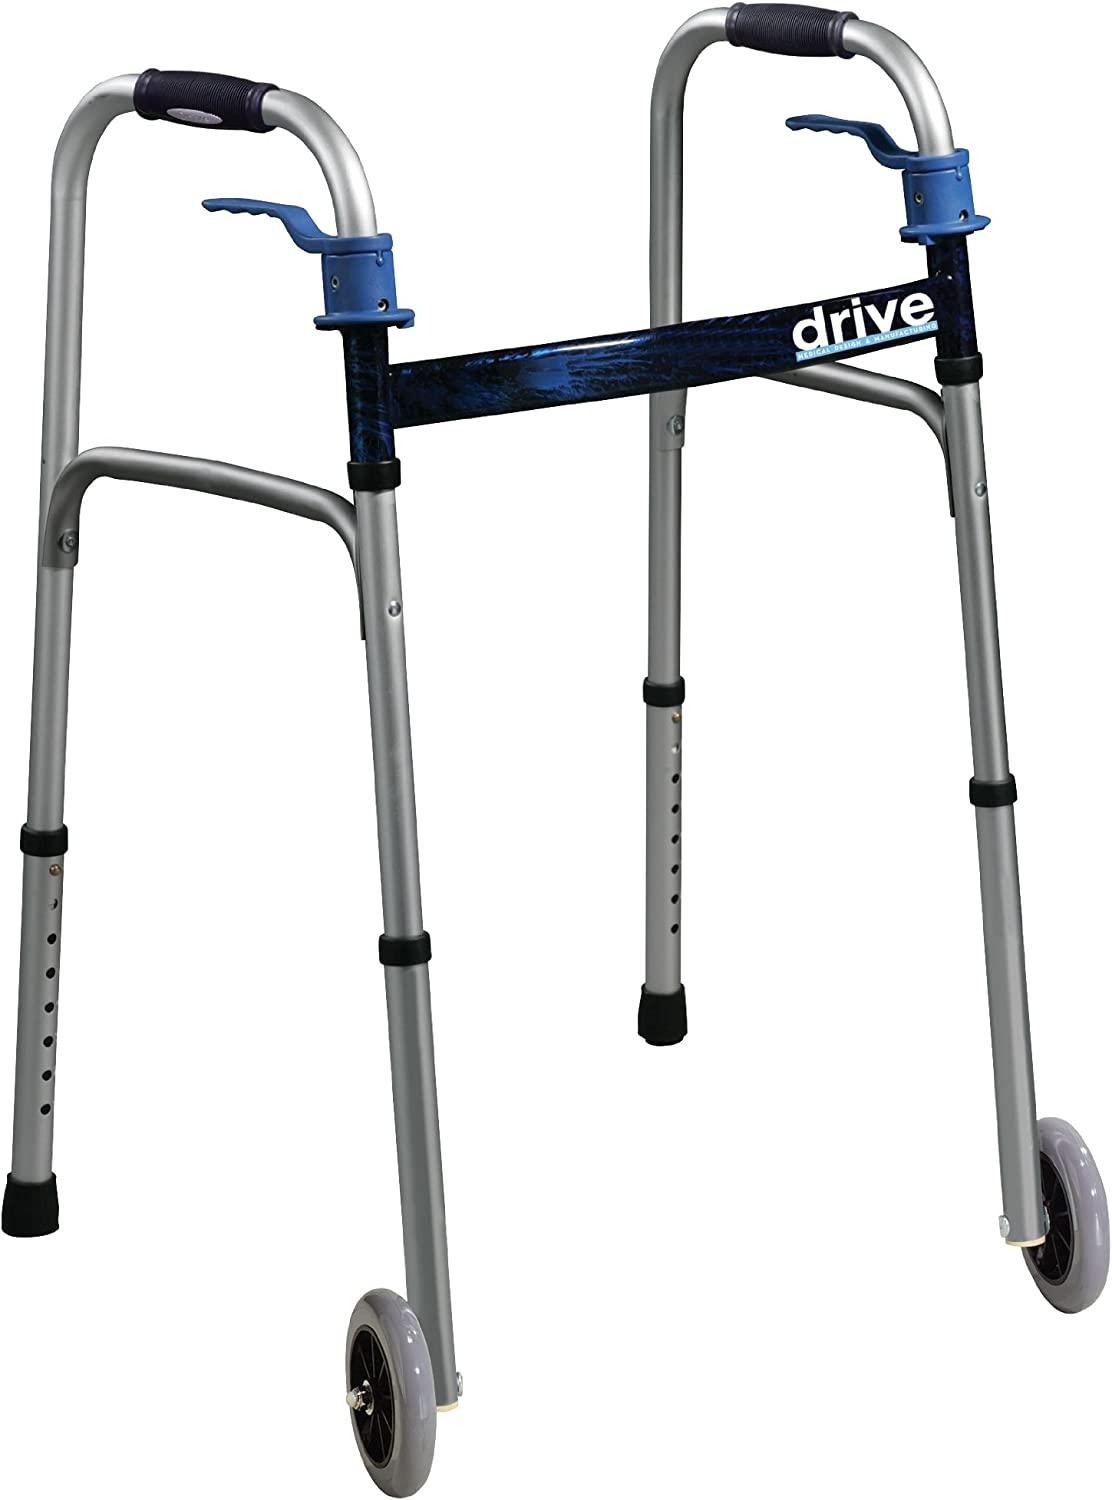 B0041POQCS Drive Medical Trigger Release Folding Walker, Brushed Steel 71HPNt50U2L